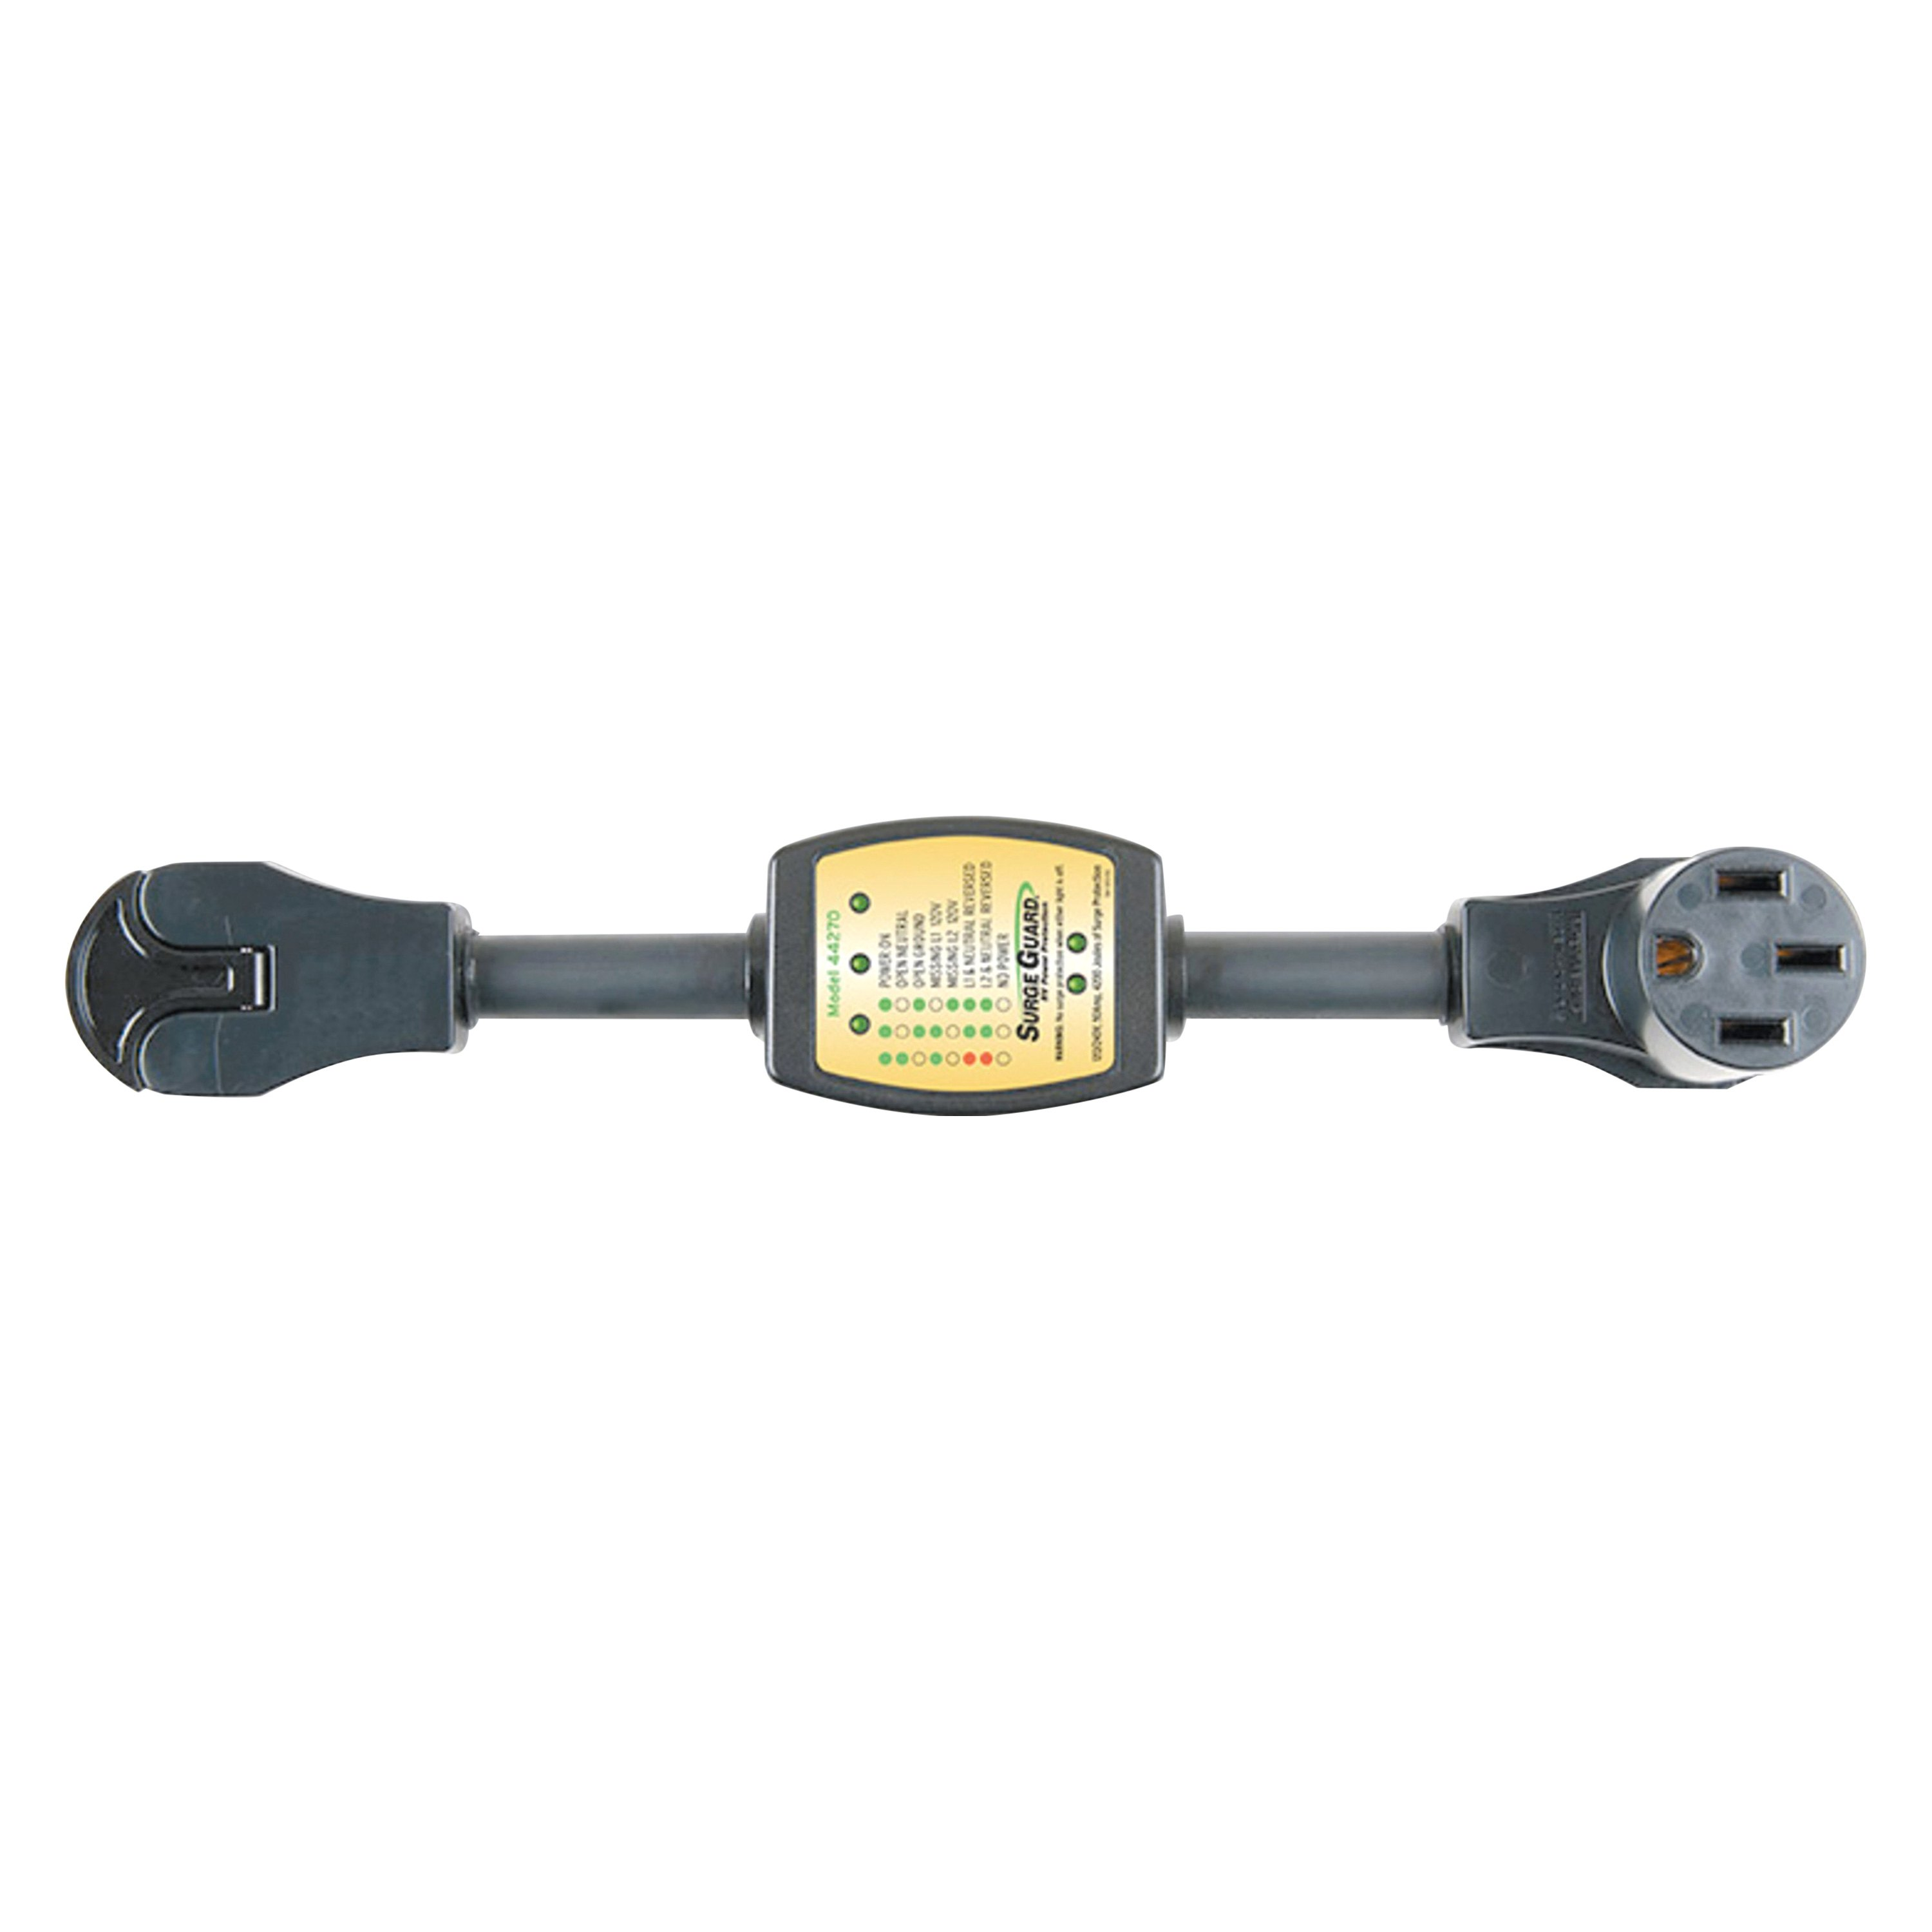 Trc 174 44270 50 Amp Entry Level Portable Surge Protector